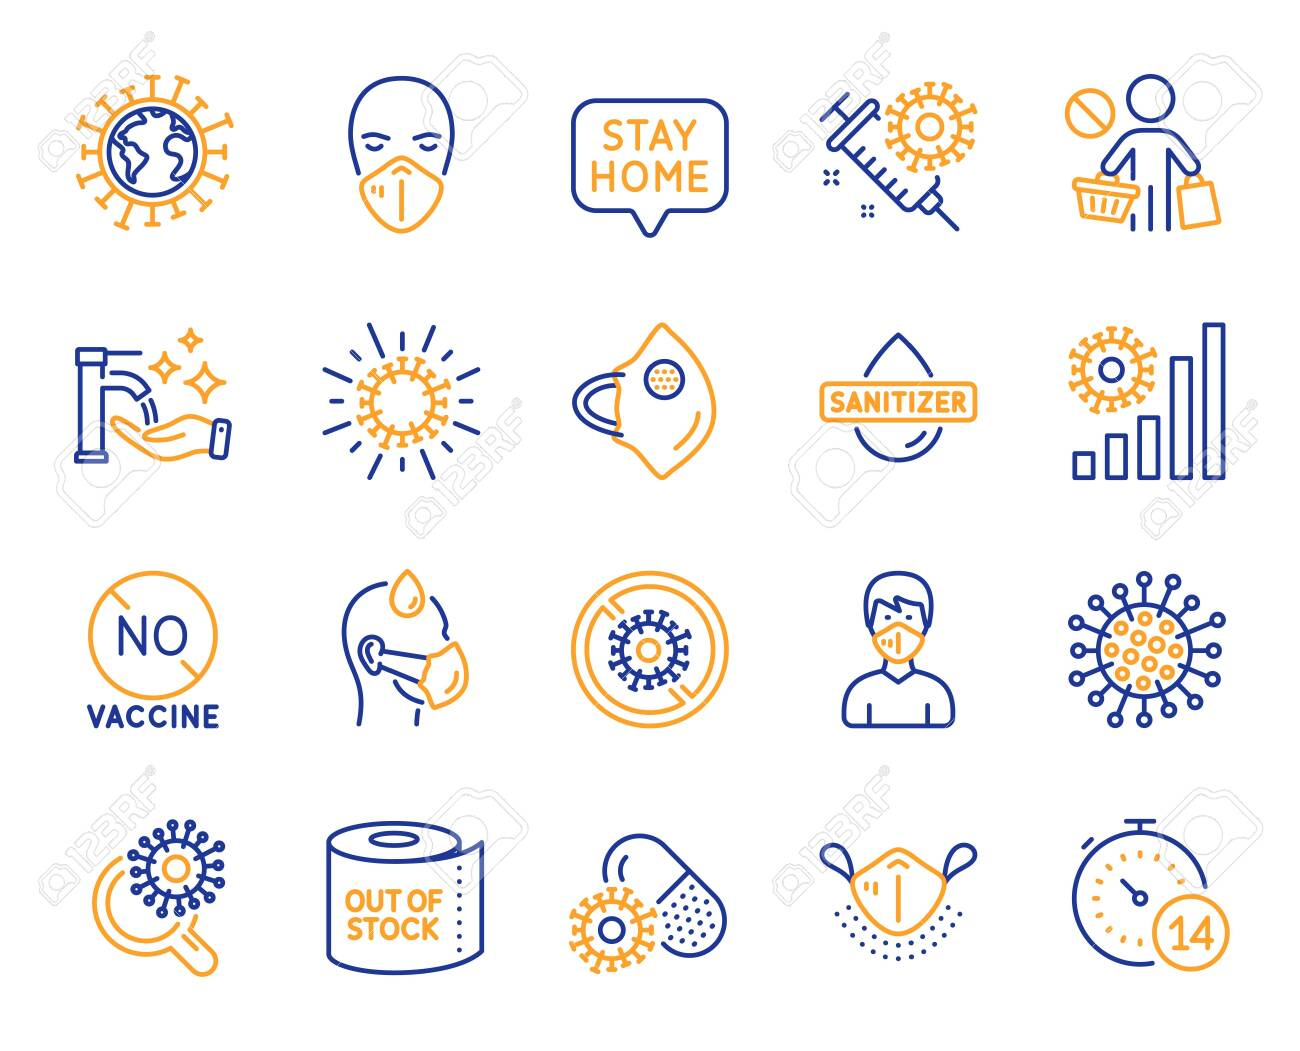 Coronavirus line icons. Medical protective mask, hands sanitizer, no vaccine. Stay home, washing hands hygiene, coronavirus epidemic mask icons. Covid-19 virus pandemic, toilet paper panic. Vector - 148201258